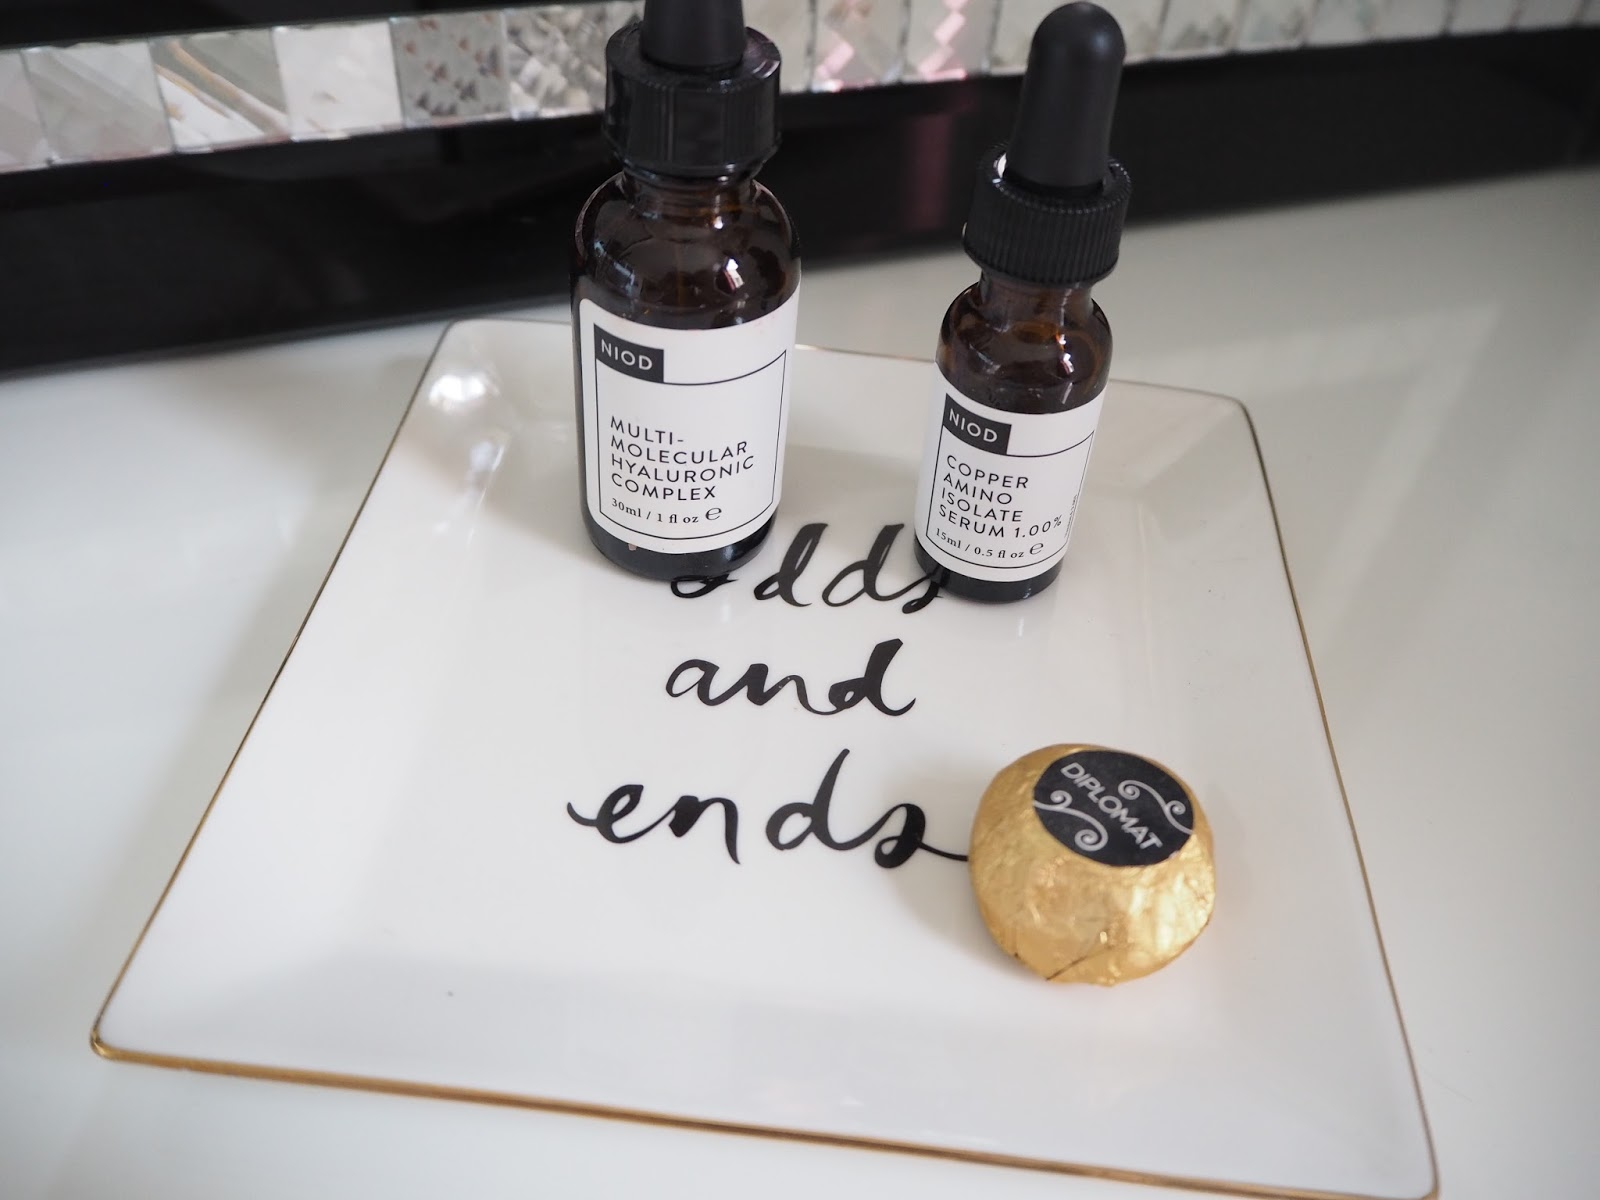 The review: Niod Multi Molecular Hyaluronic Complex and Copper Amino Isolate Serum